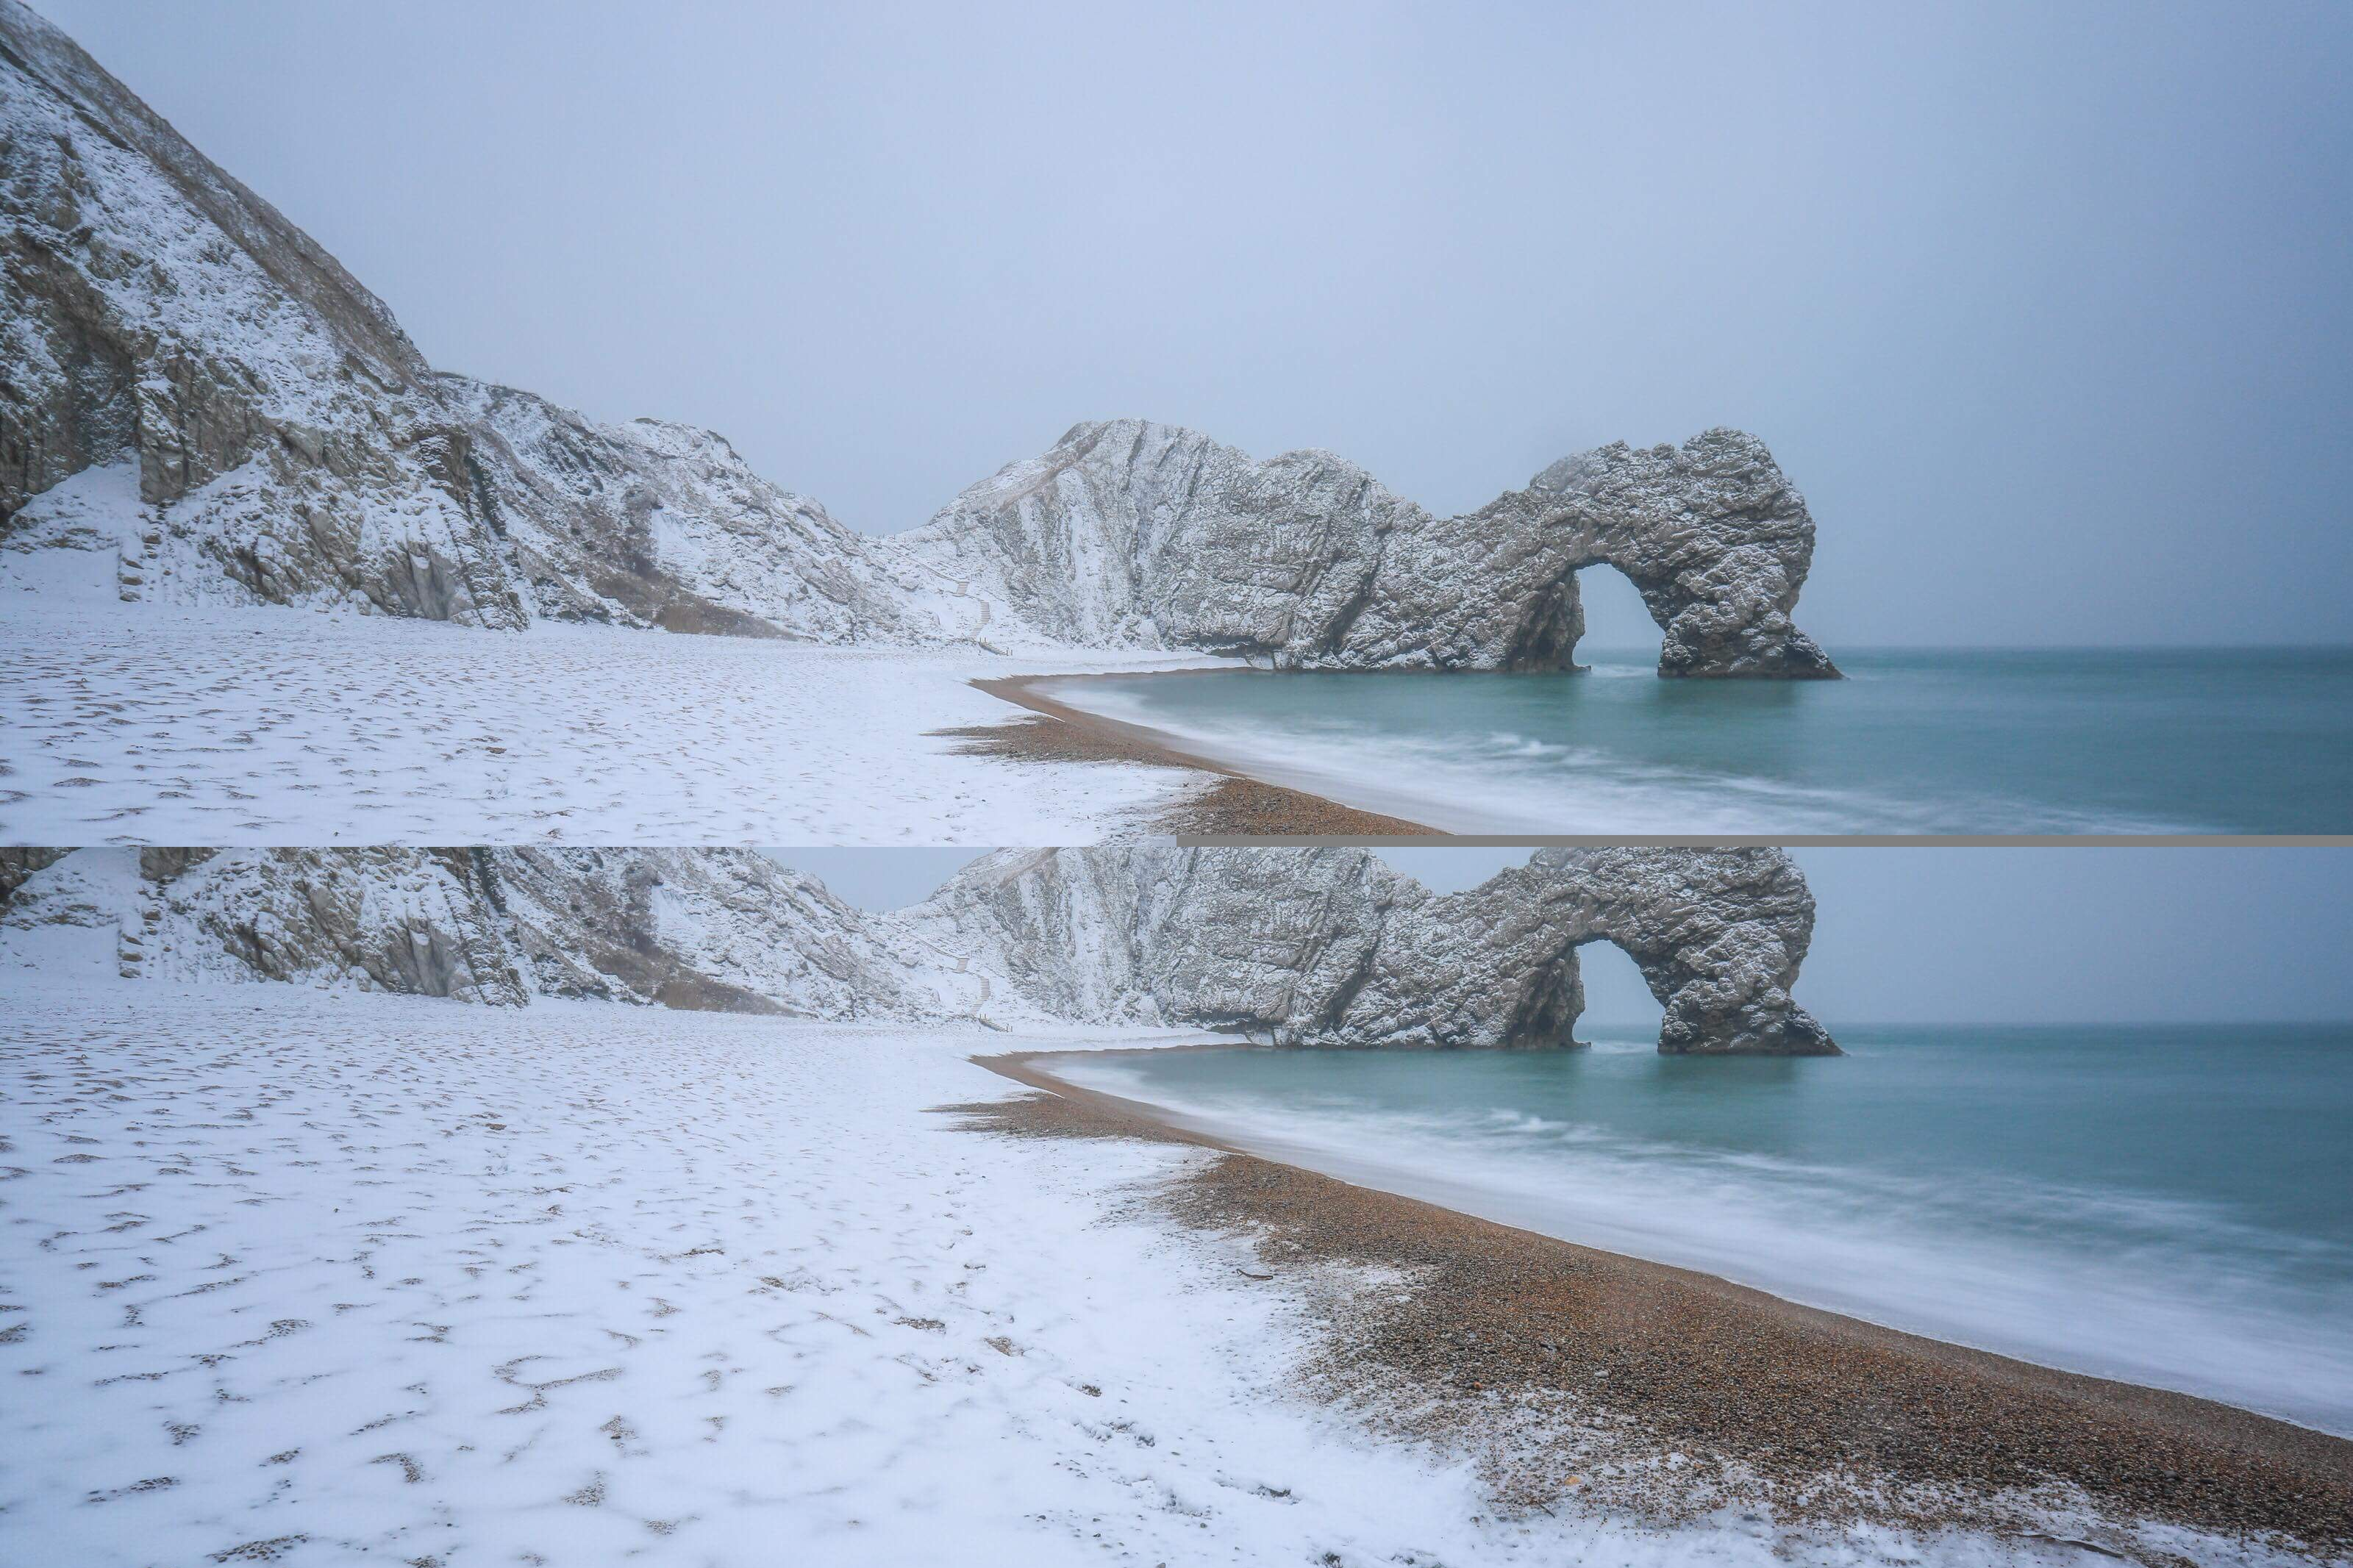 Le Meilleur Durdle Door Snow Pinners Photography Co Uk Durdle Door Snow Ce Mois Ci